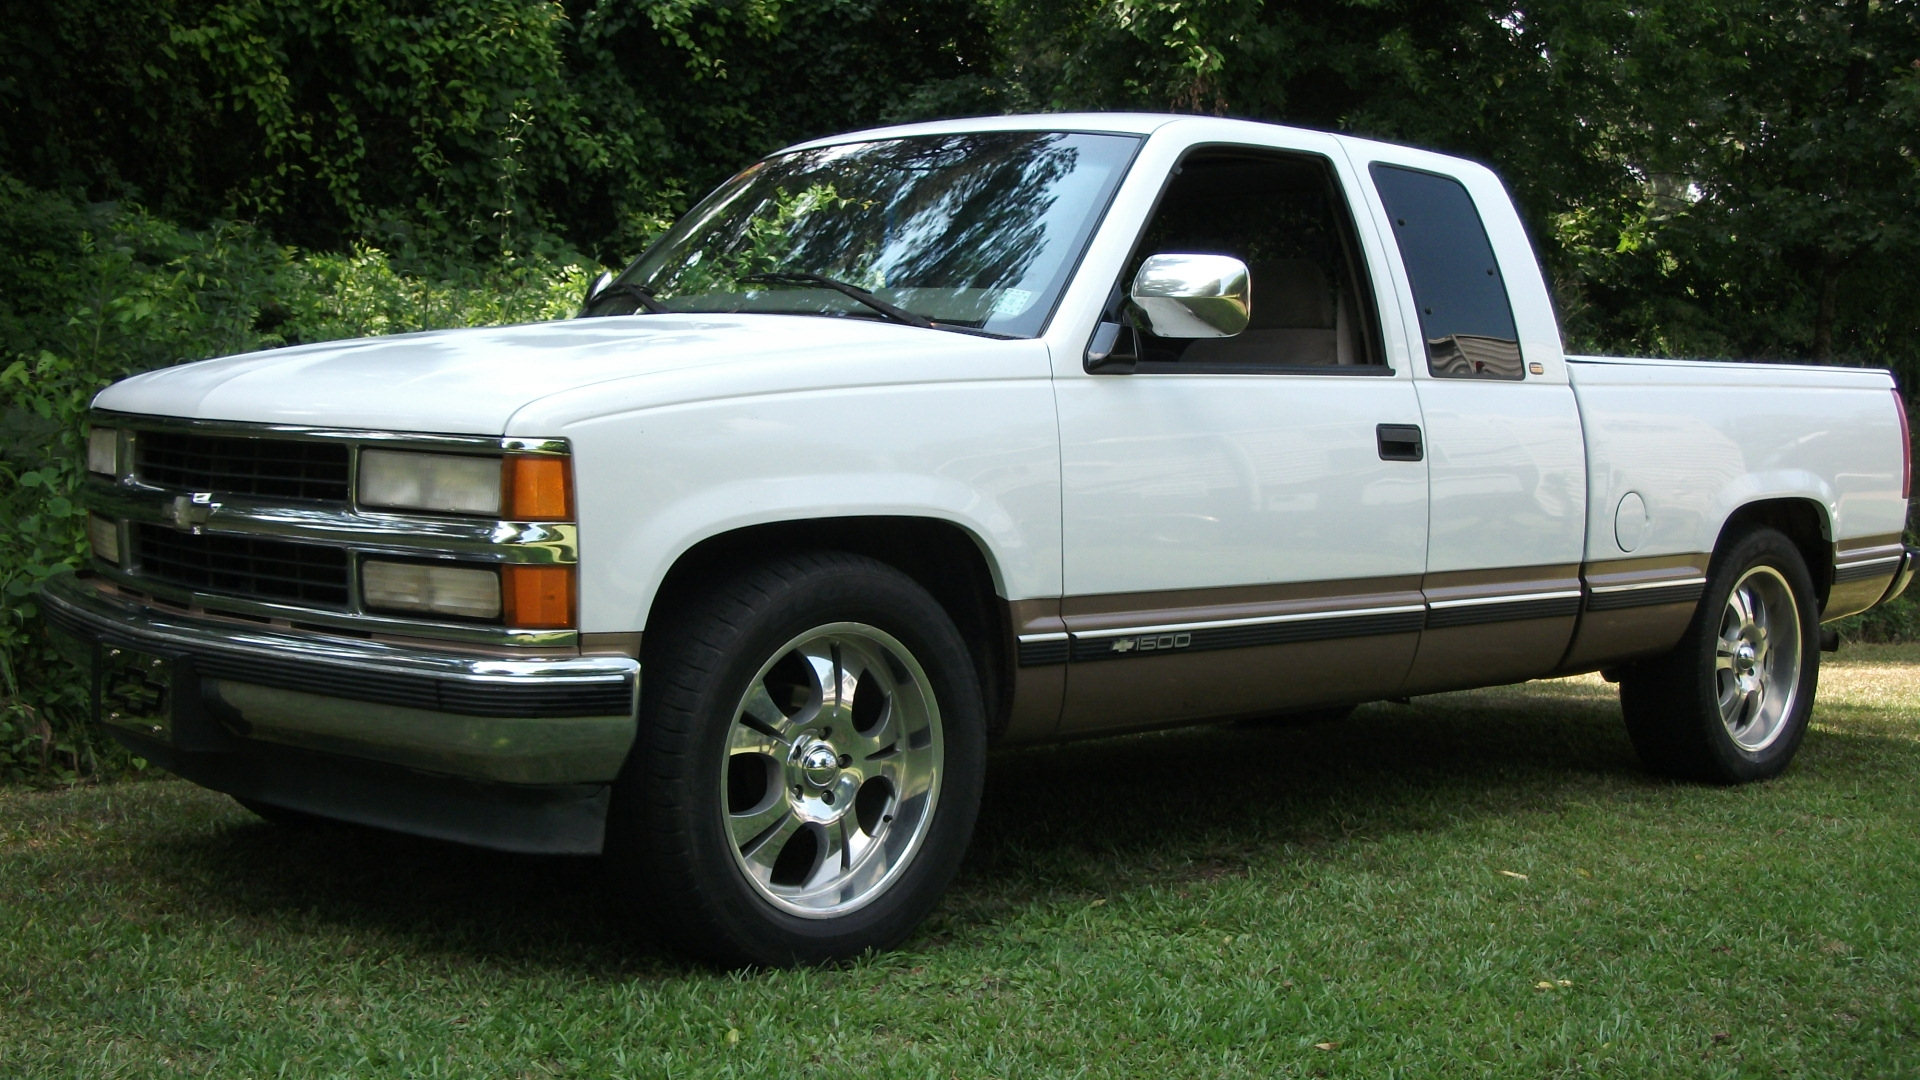 Cablguy S White Lightning 1997 Chevy Silverado 1500 Extended Cab Gm Truck Club Forum